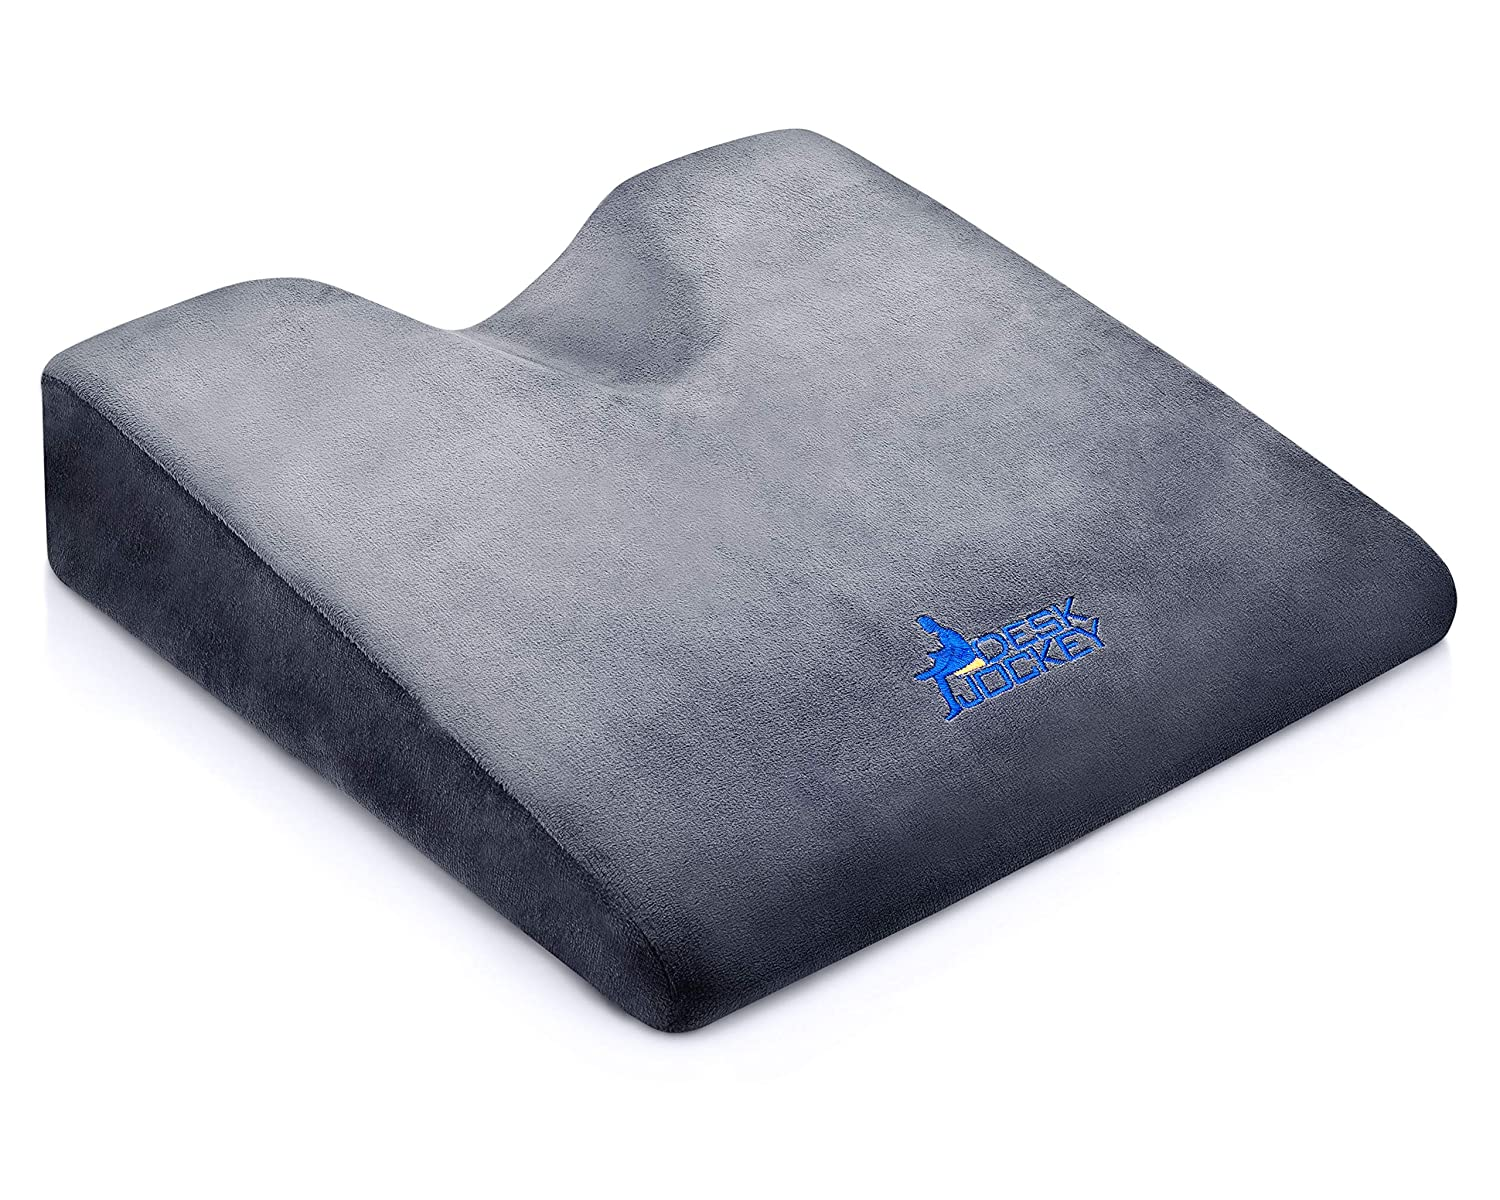 Desk Jockey Wedge pad Car Seat Cushion for back pain